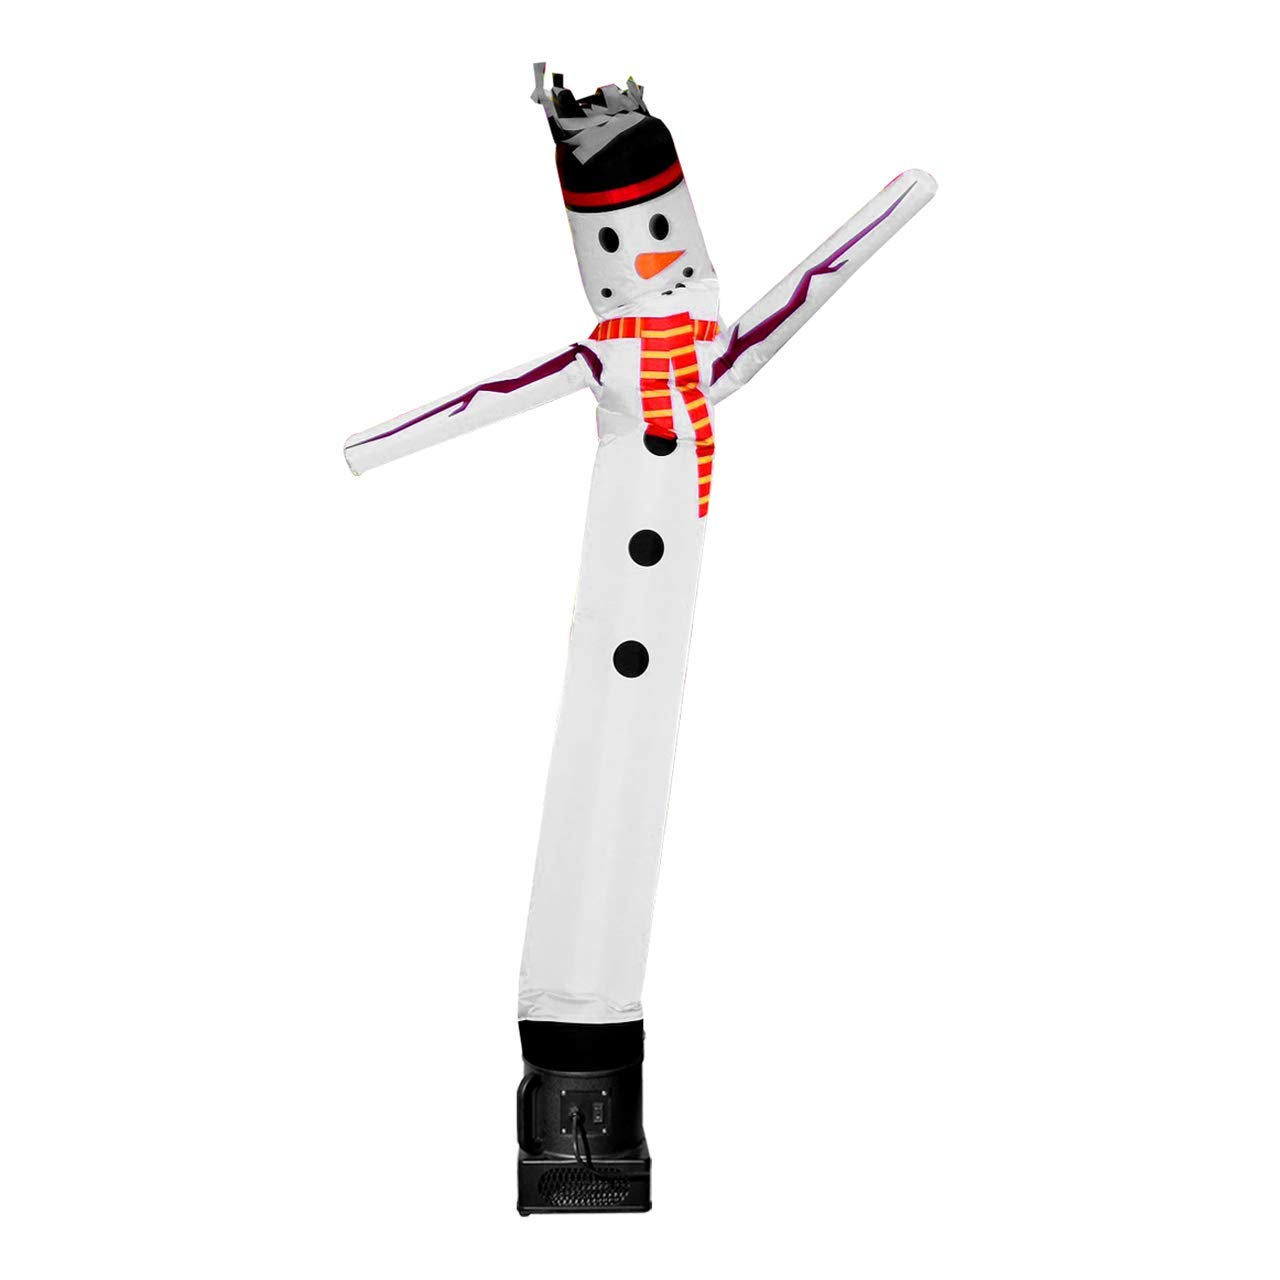 LookOurWay Snowman 6ft Tall Air Dancers Inflatable Tube Complete Set with 1/4 HP Sky Dancer Blower by LookOurWay